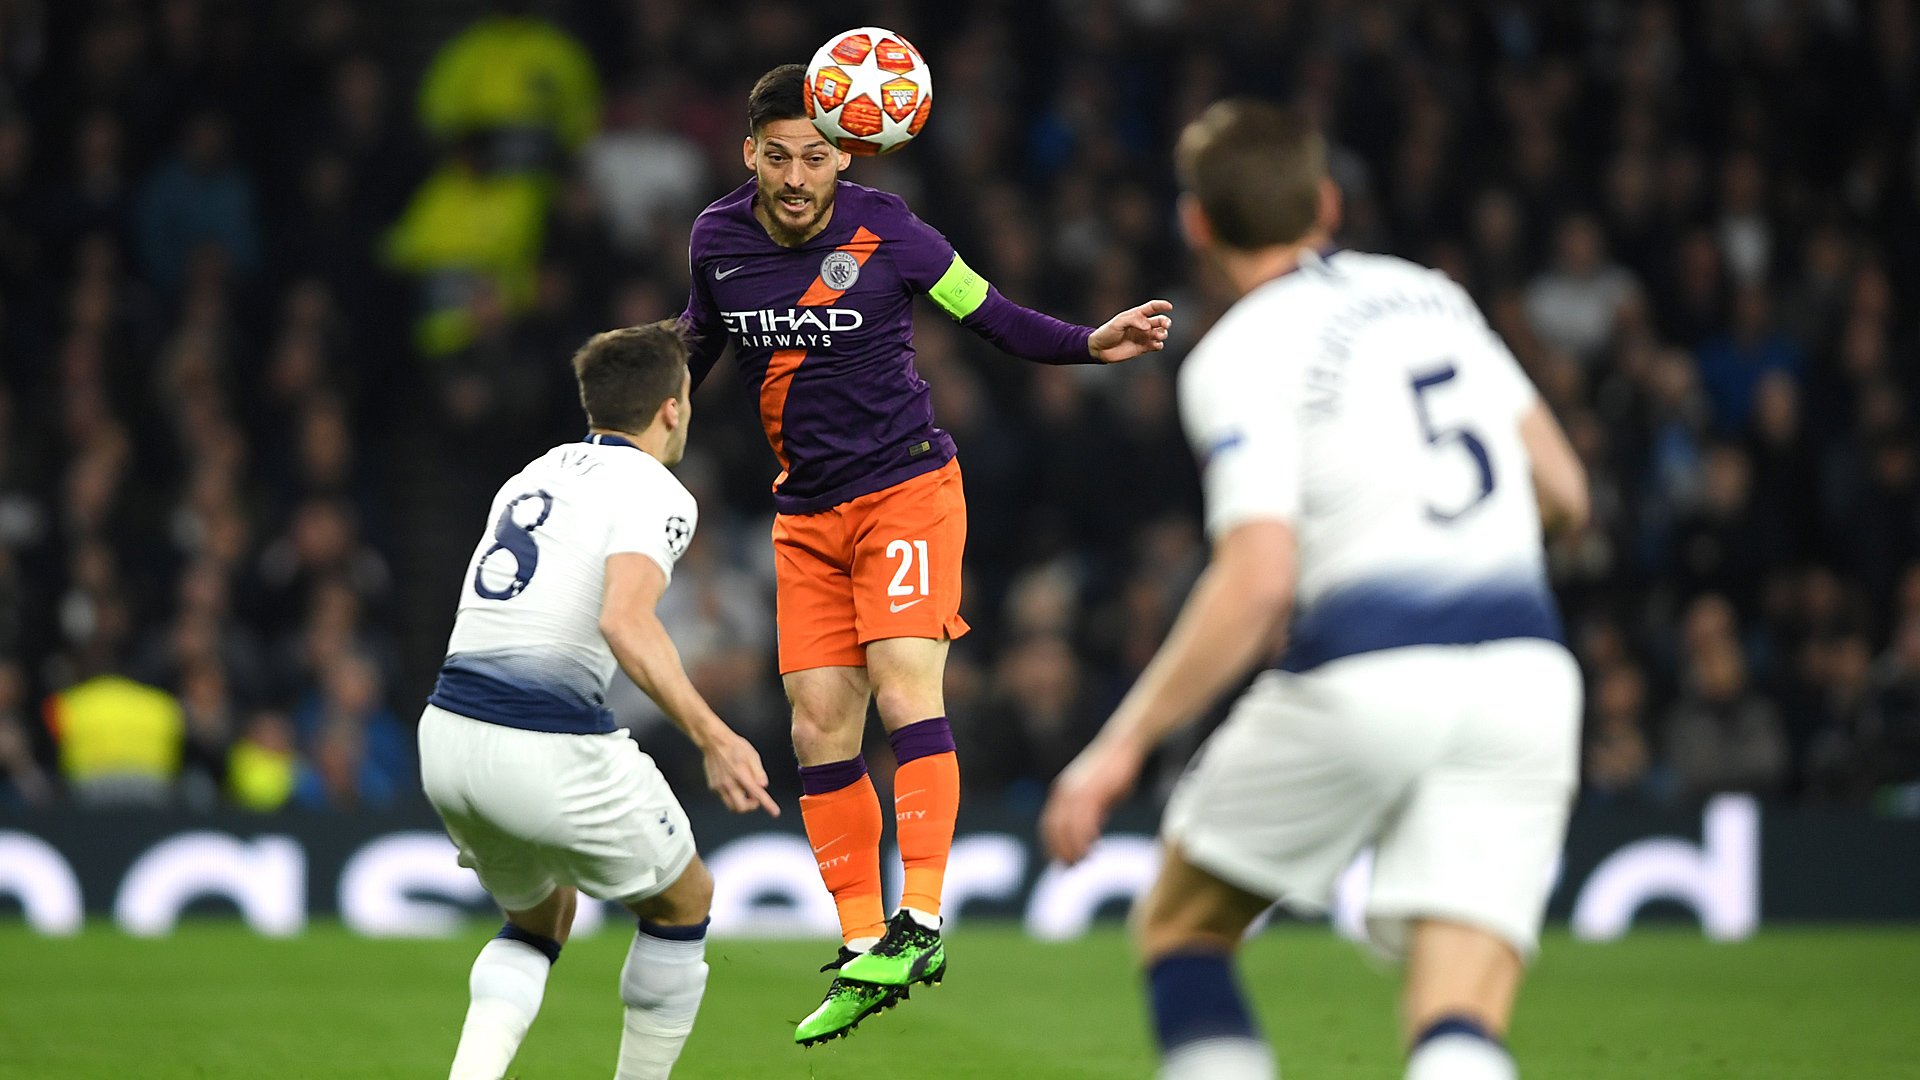 CHAMPIONS LEAGUE - City-Tottenham: pazzesco 4-3, Guardiola fuori! Liverpool in semifinale